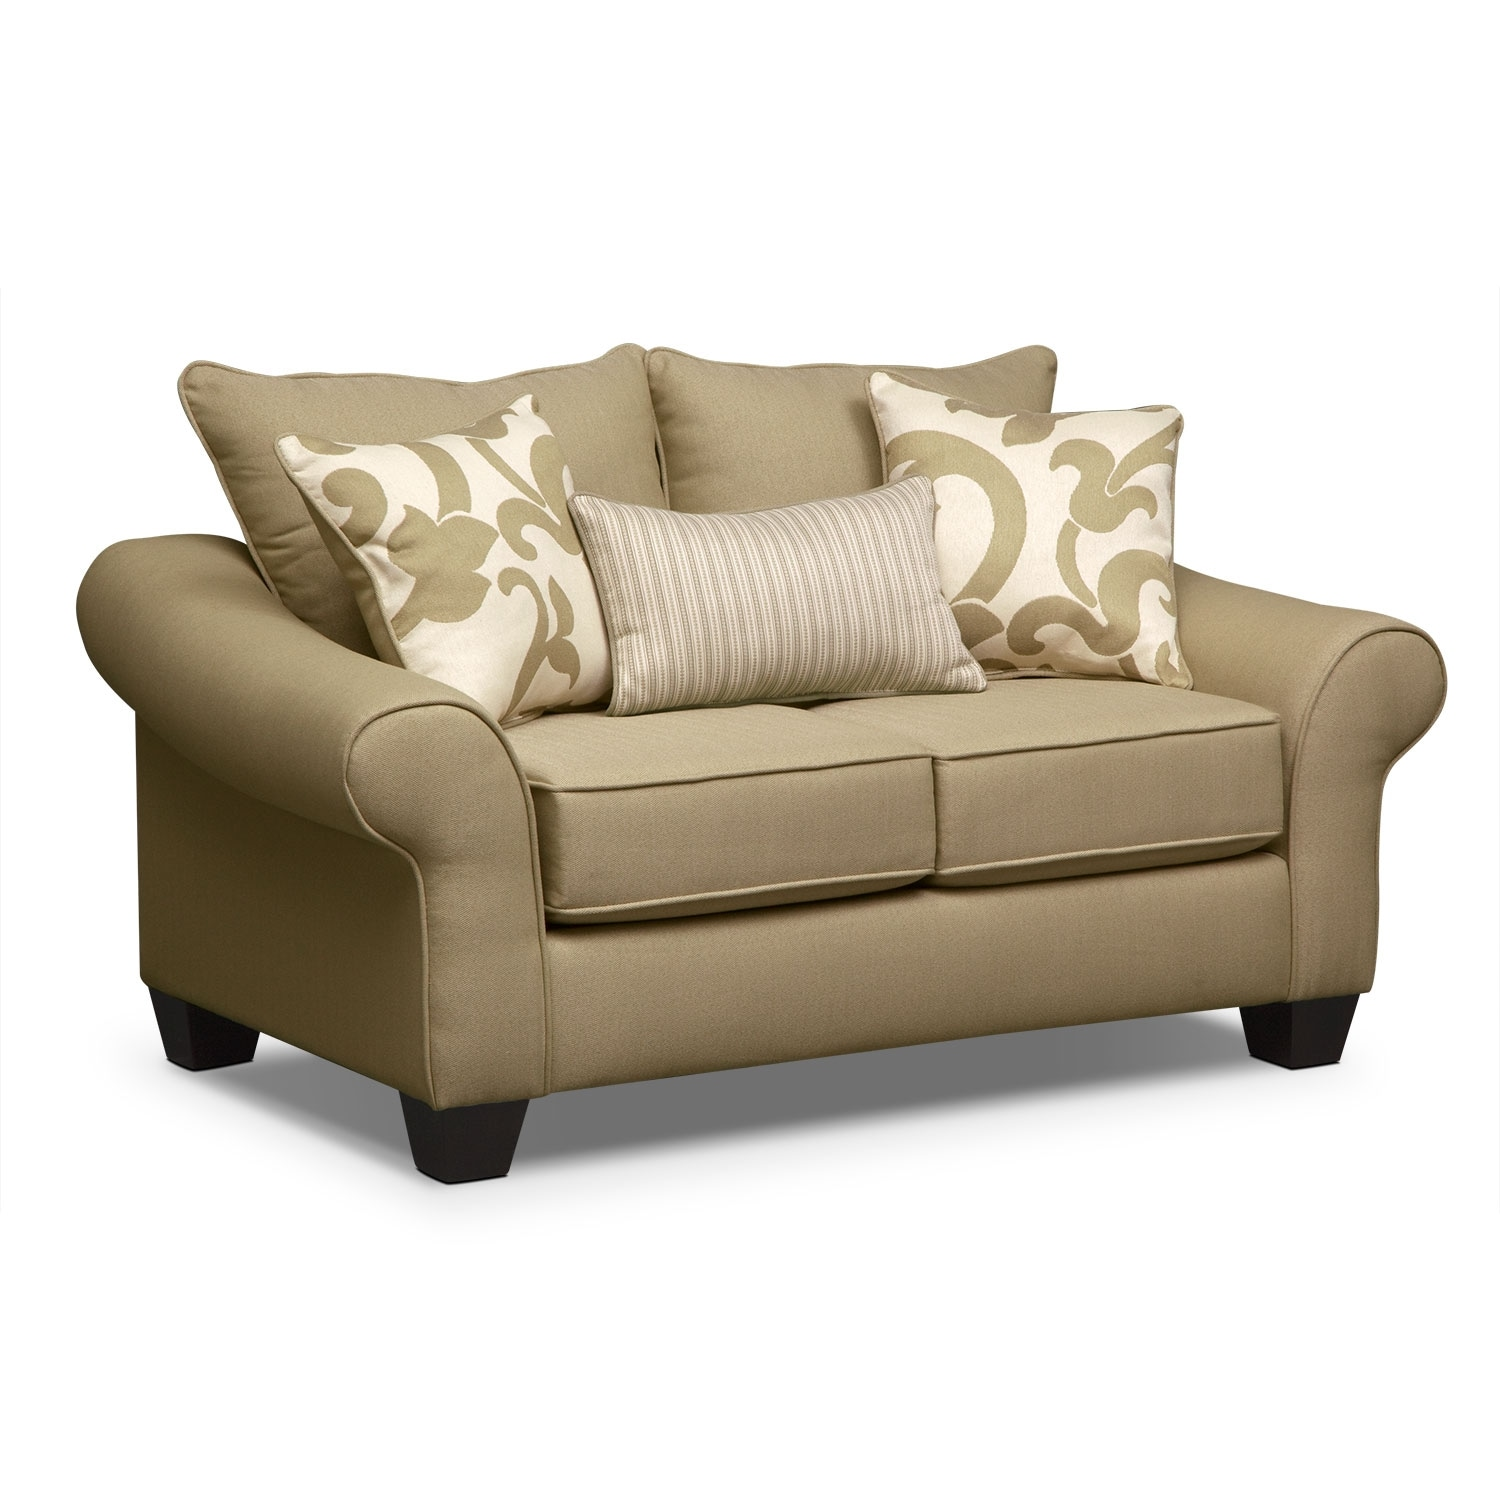 Go for the Gold Style Furniture